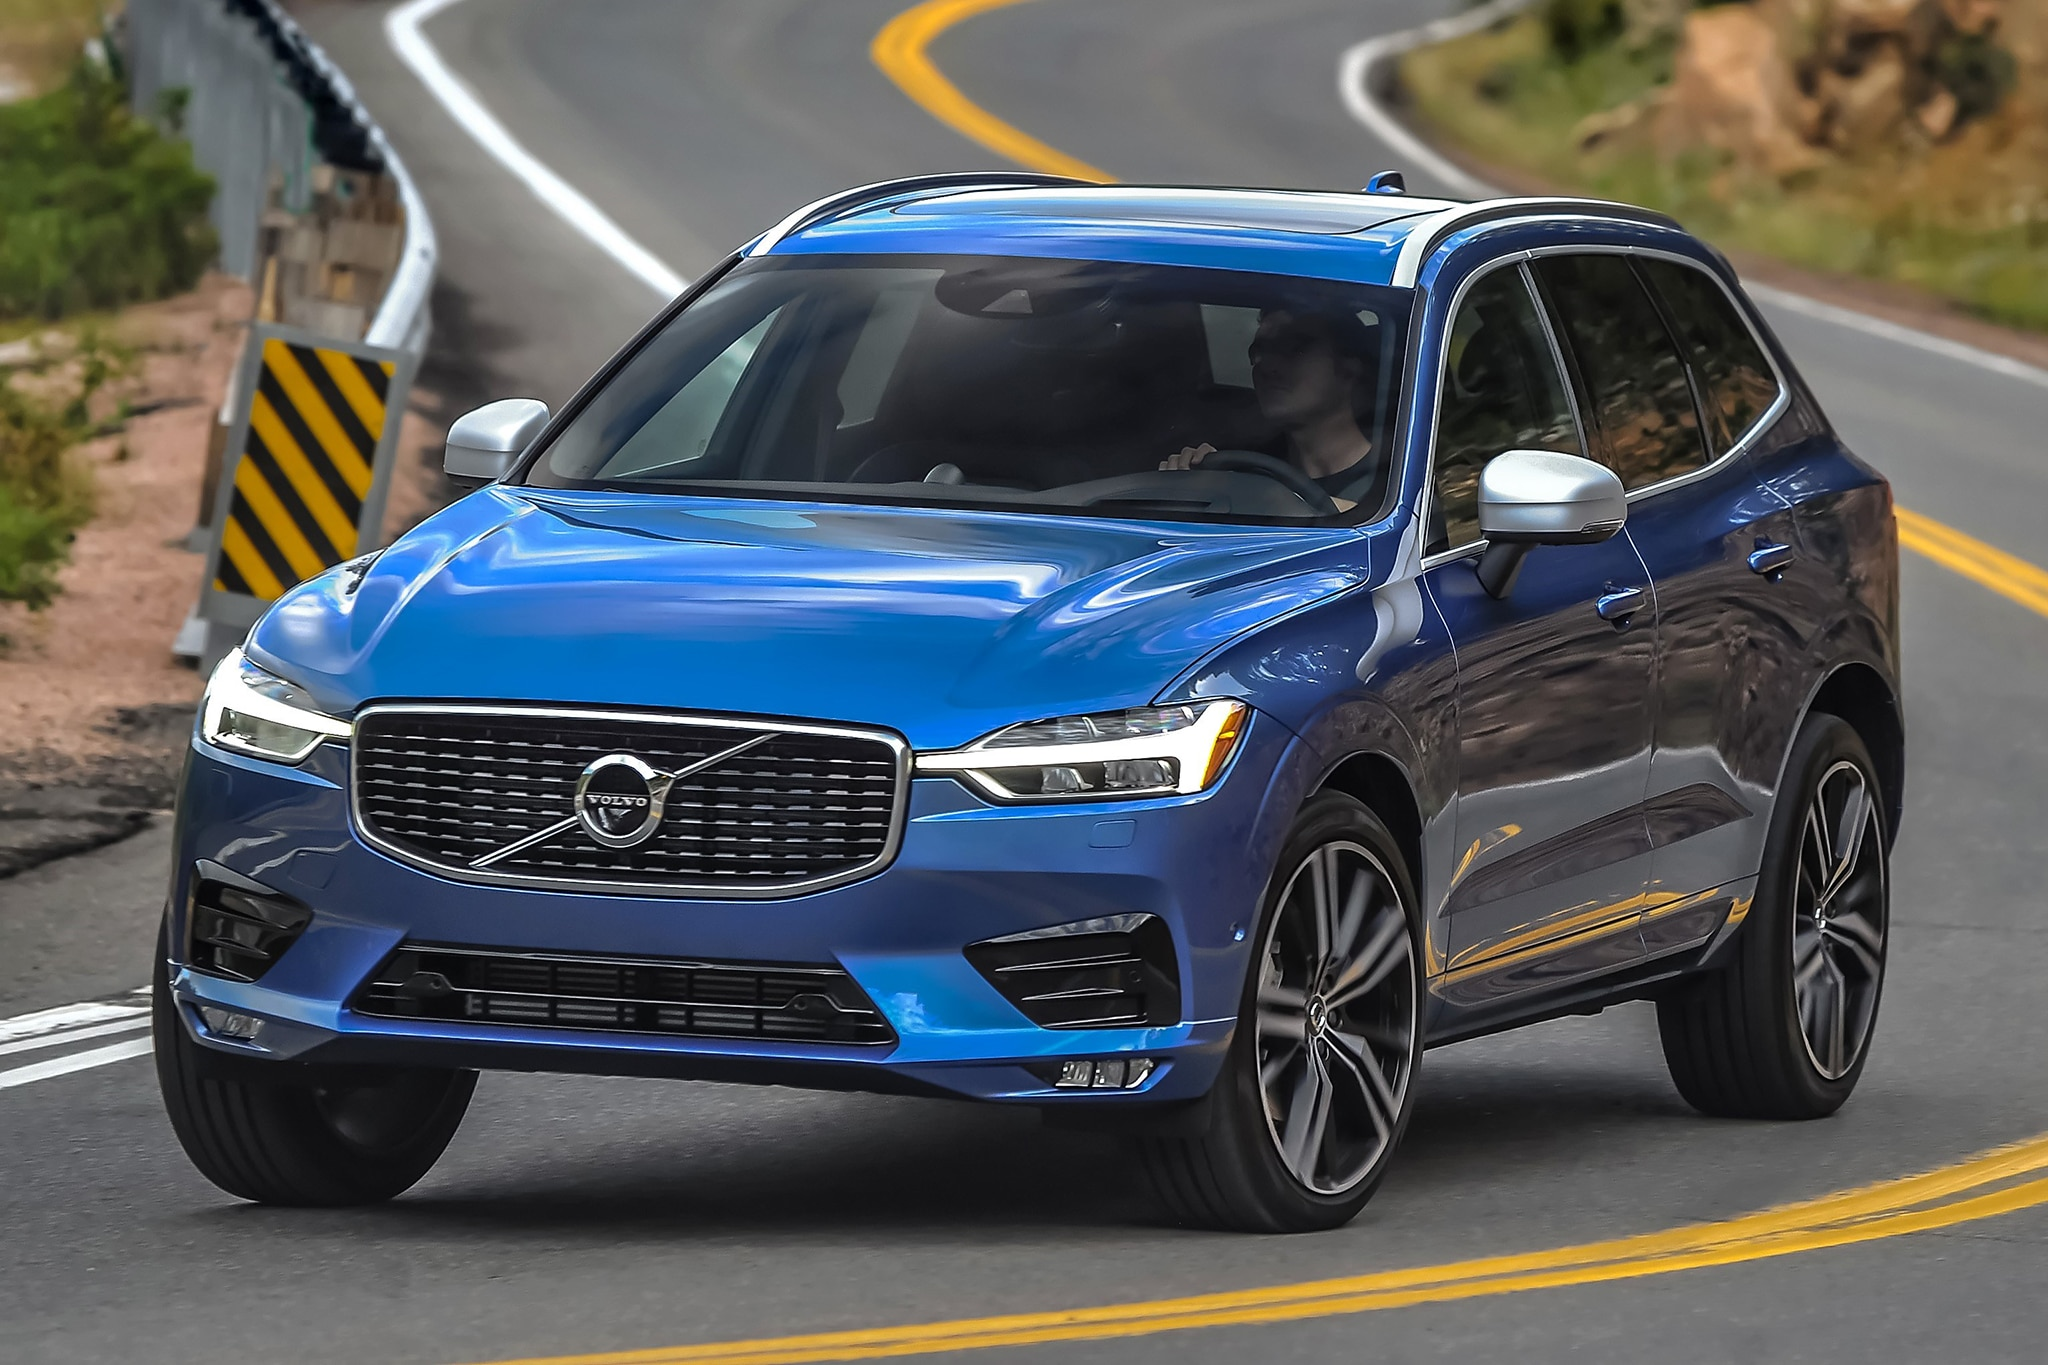 Swedes In Denver We Drive The 2018 Volvo Xc60 V90 And S90 T8 Hybrid Automobile Magazine